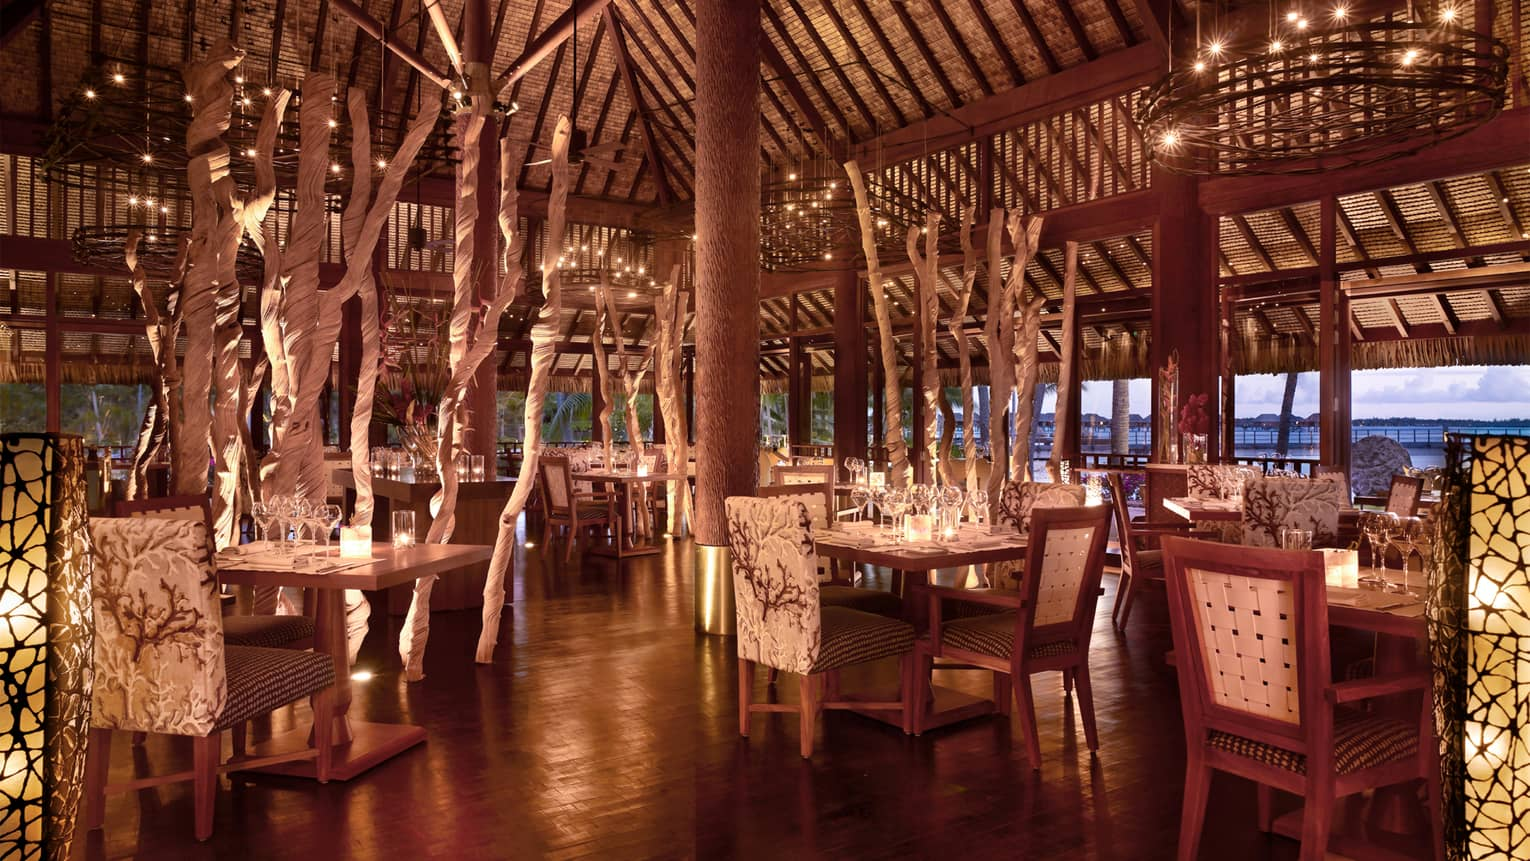 Elegant, candle-lit Arii Moana open-air dining room with plush chairs, decorative branches